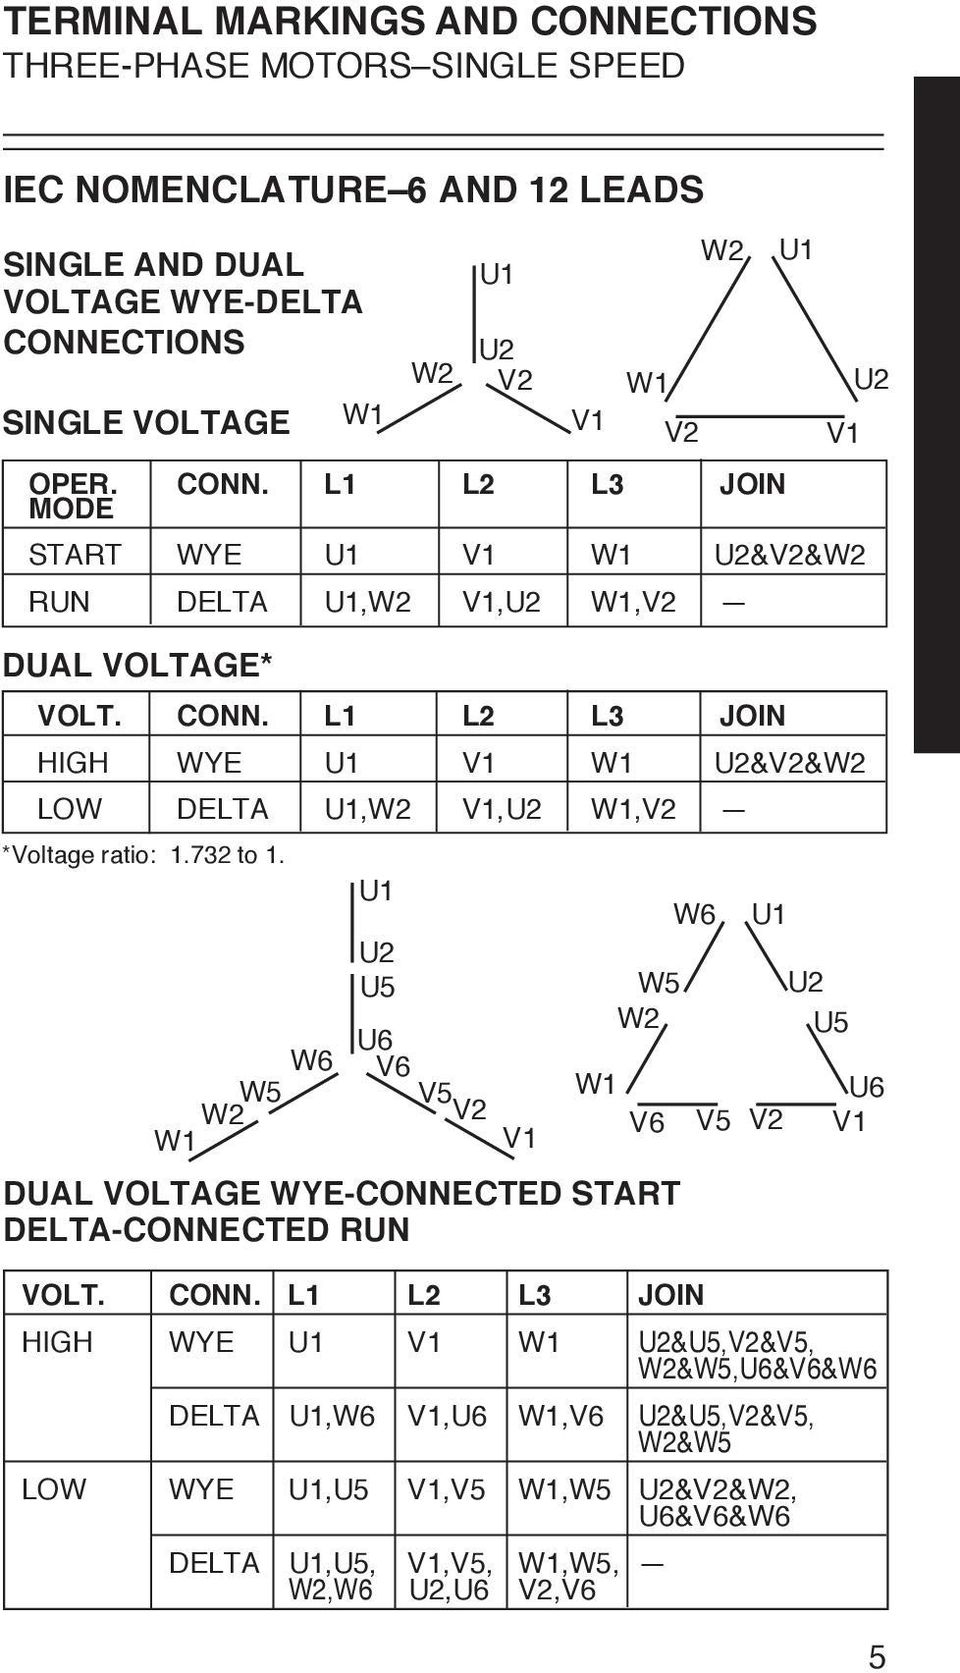 12 Lead Motor Wiring Diagram Iec | Manual E-Books - 3 Phase Motor Wiring Diagram 12 Leads